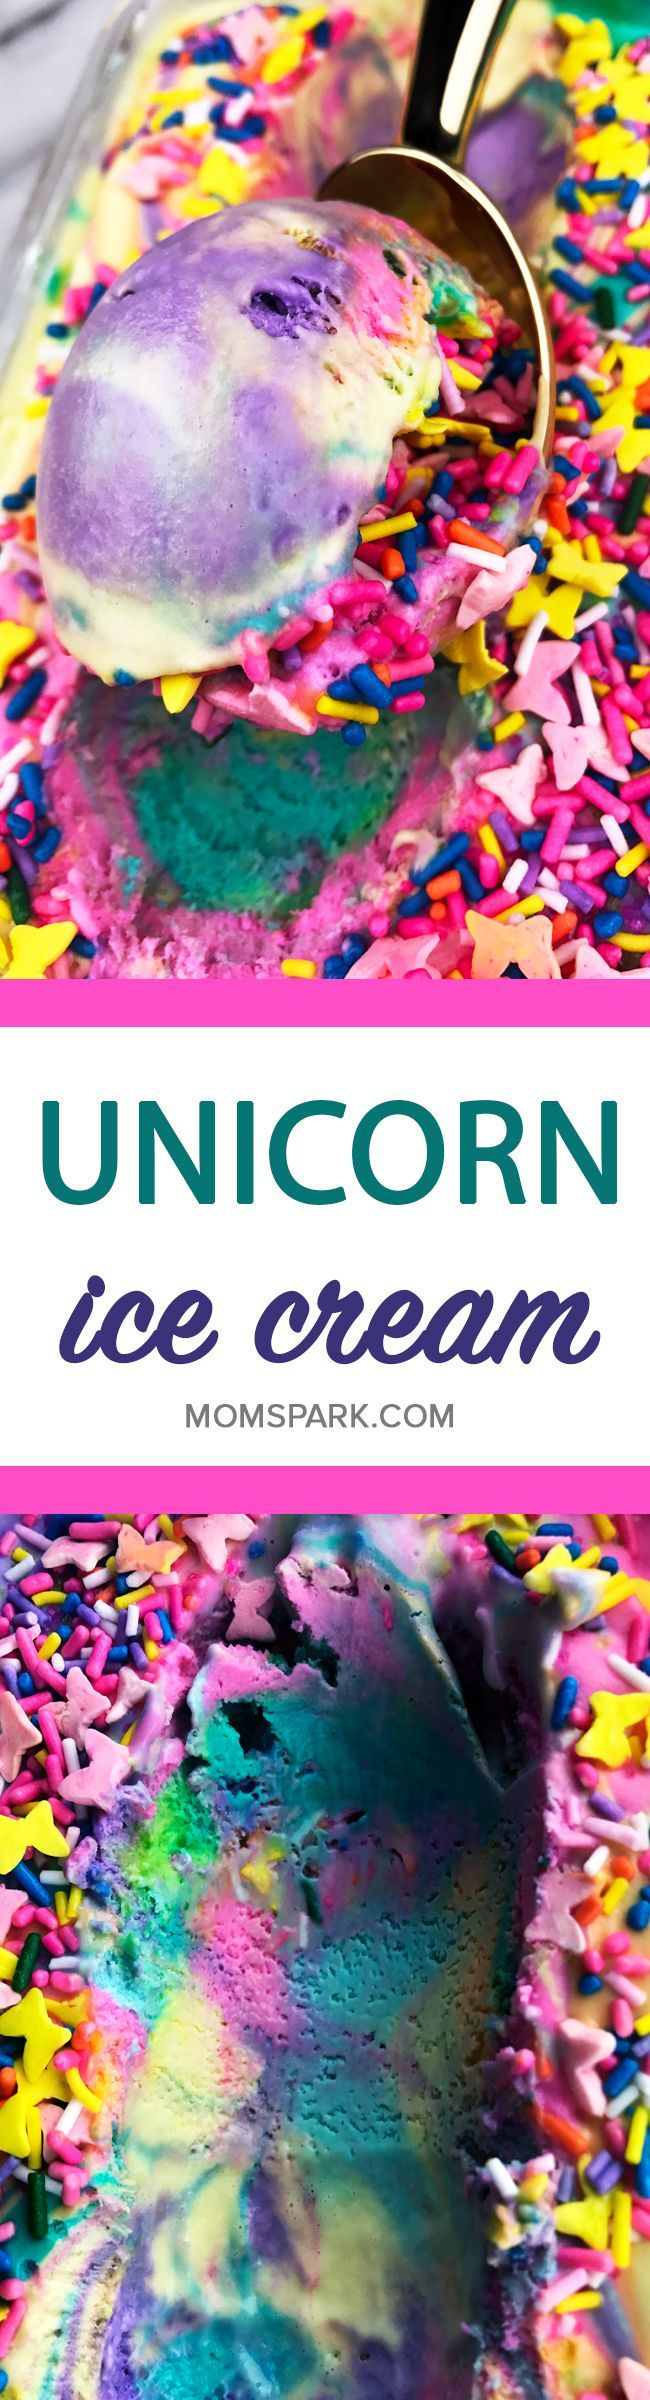 Rainbow Unicorn Ice Cream Recipe - Unicorns may be imaginary magical creatures, but we're still ready to celebrate them. Today's recipe does just that. It's a mixture of bright rainbow ice cream colors covered in sprinkles. This ice cream recipe is perfect for your next fantasy unicorn party celebration. Or just because it's fun and delicious. Either way. No judgment here.